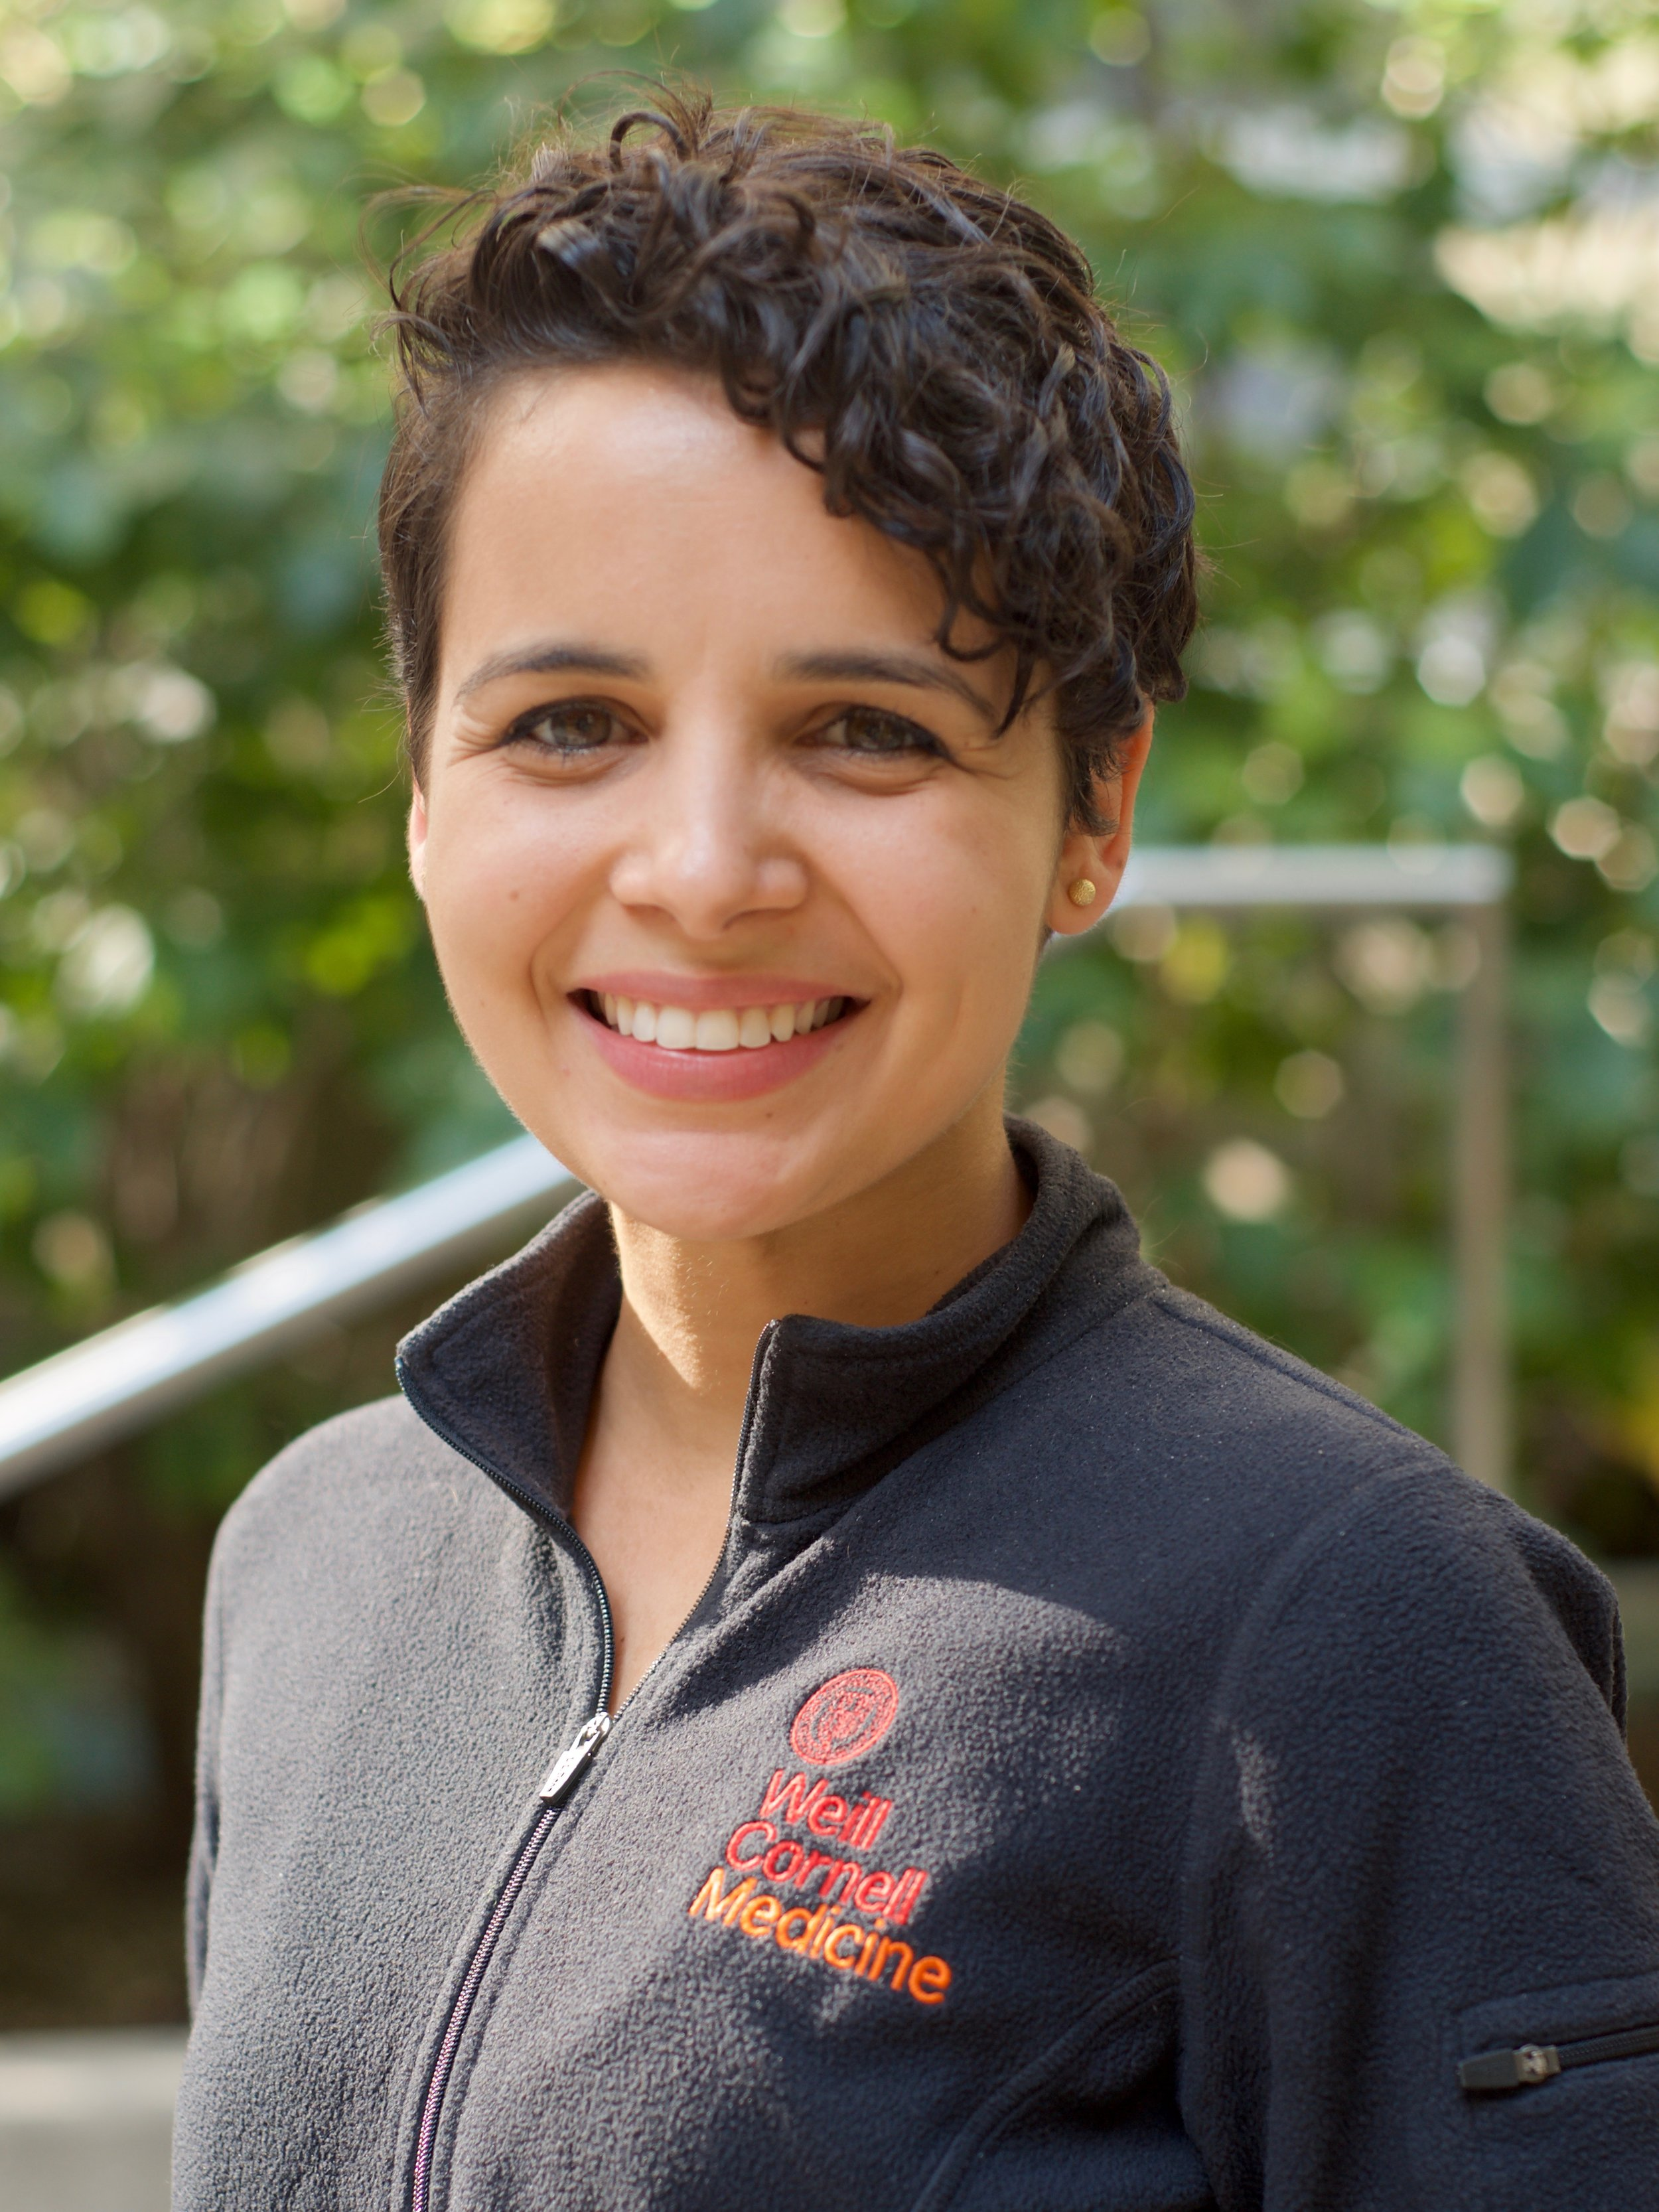 Thaís Klevorn - Thaís is from Rio de Janeiro, Brazil. She completed her Bachelors in Biomedical Science at Bahiana School of Medicine and Public Health in Brazil with one year at Barnard College of Columbia University in NY as part of the Science Without Borders program. In Brazil, she did research on the immune response against Leishmania spp. at Oswaldo Cruz Foundation and Federal University of Sergipe. Before starting graduate school at Weill Cornell, she worked as a research technician at New York University, studying mechanisms of T cell evasion by Mycobacterium tuberculosis. She joined the Ehrt lab in June 2019 because she loves infectious disease research and could not think of a better lab in the world to carry out her PhD. Thaís also loves cycling, hiking and camping, but if the weather is bad, there is nothing like a cooperative-strategy board game session.